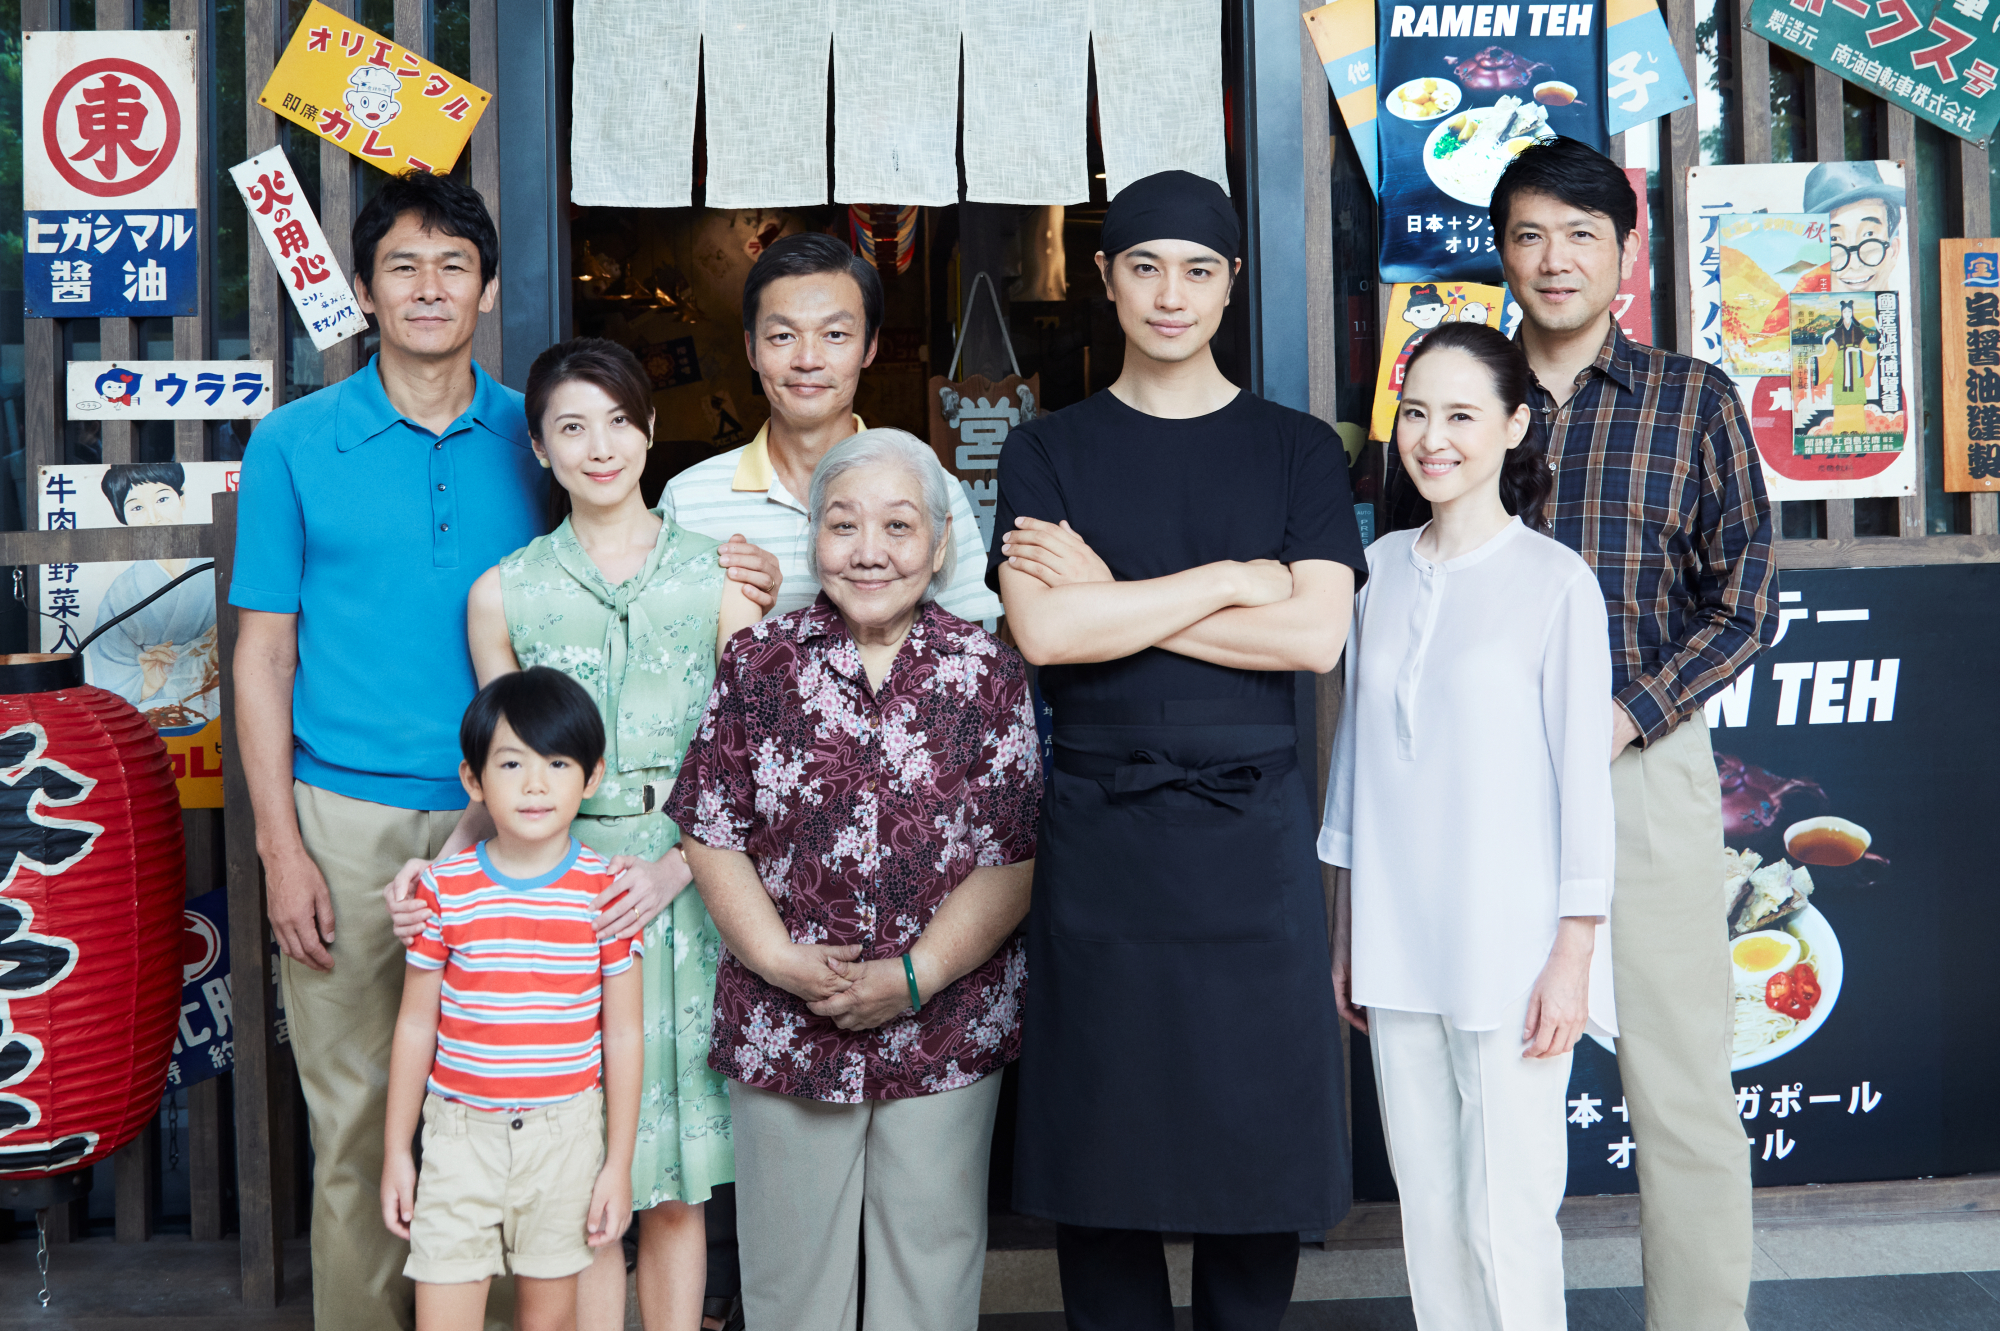 Film screening: The Tokyo International Film Festival will show 2018's World Focus Special Screening feature 'Ramen Teh' directed by Eric Khoo at a special pre-festival event. | © ZHAO WEI FILMS/WILD ORANGE ARTISTS